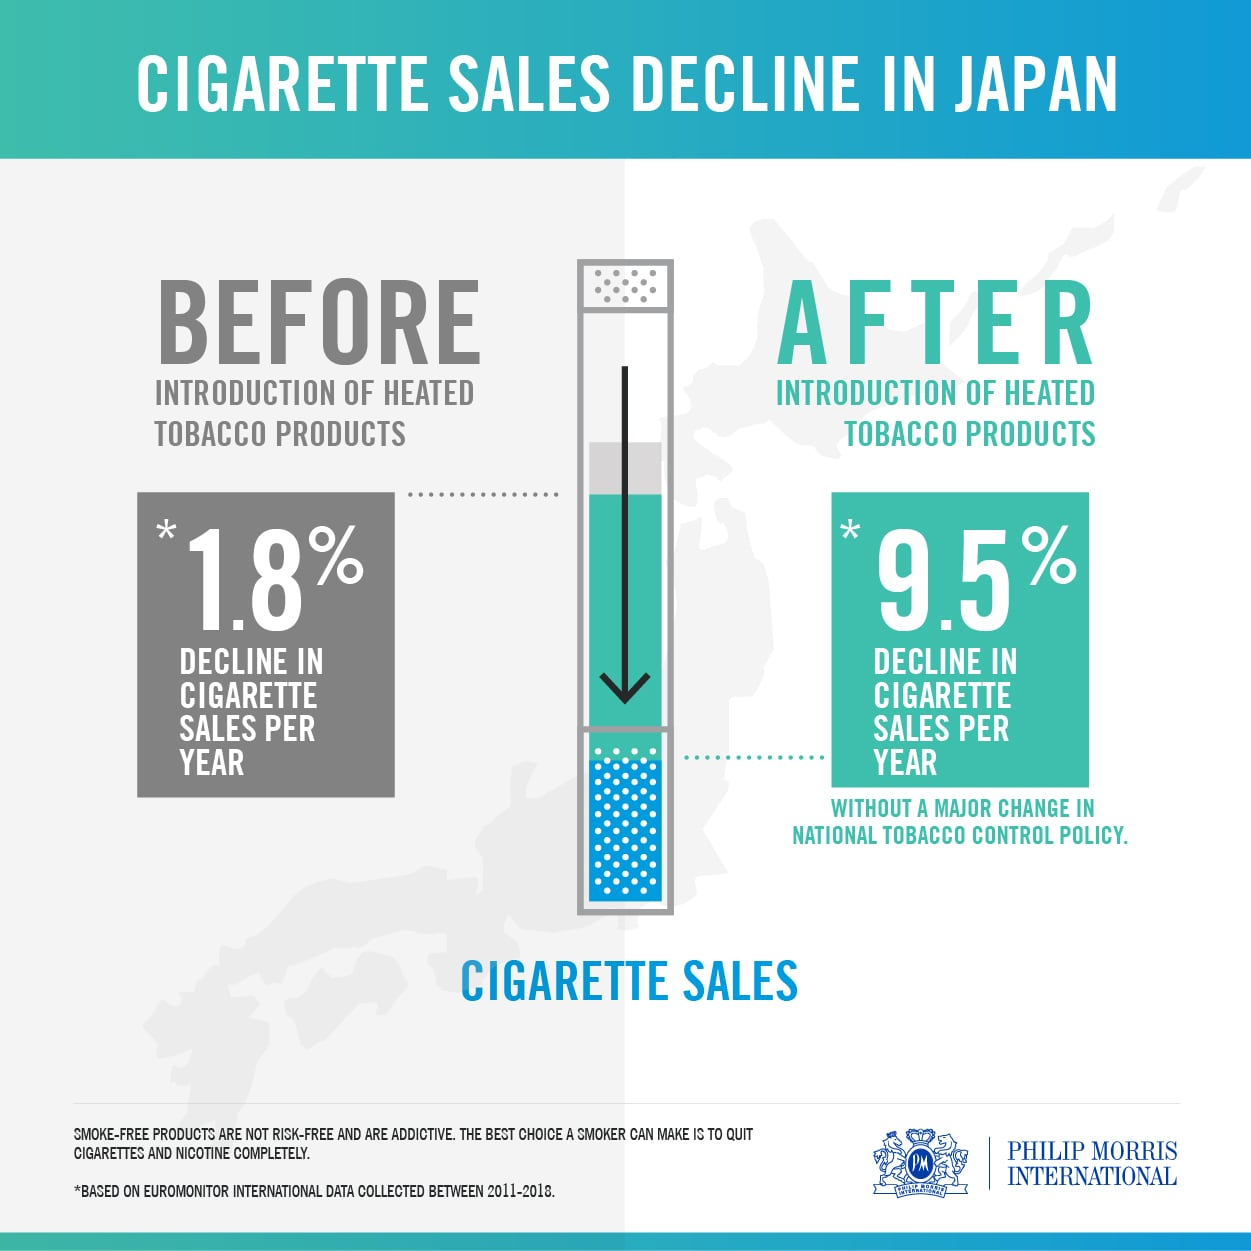 pmi cigarette sales decline in japan